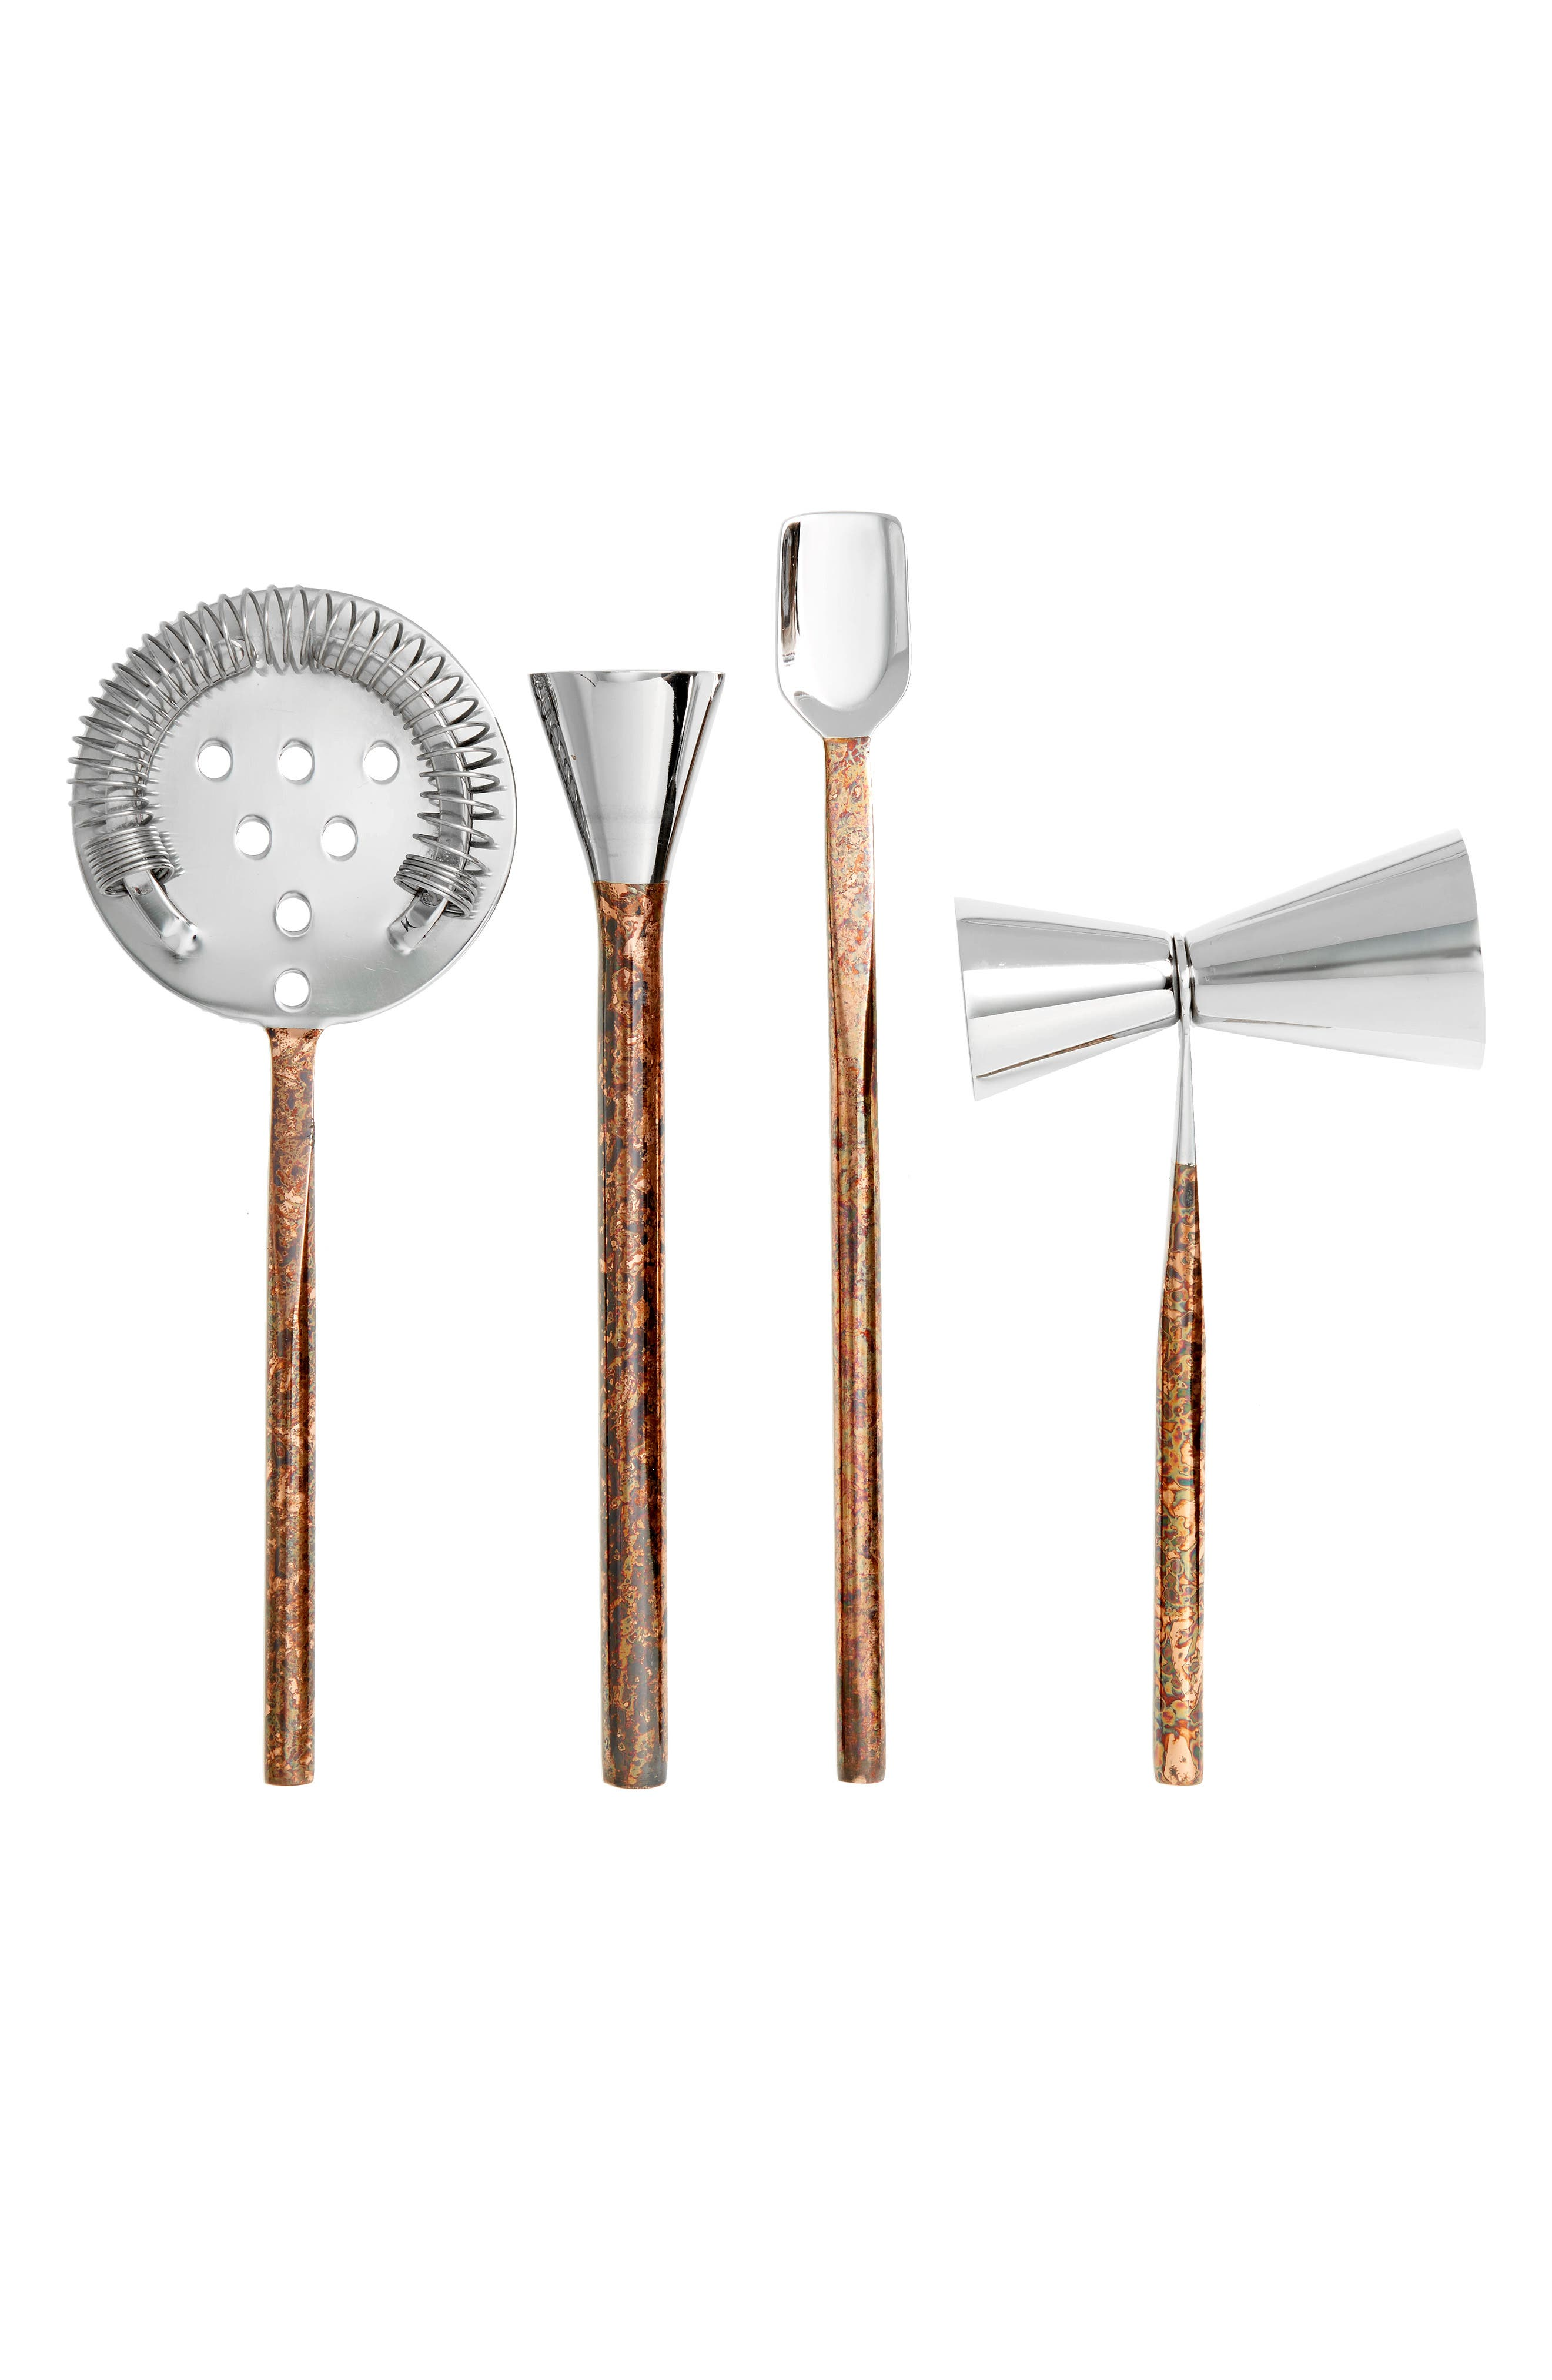 4-Piece Distressed Copper & Stainless Steel Bar Set,                         Main,                         color, 220